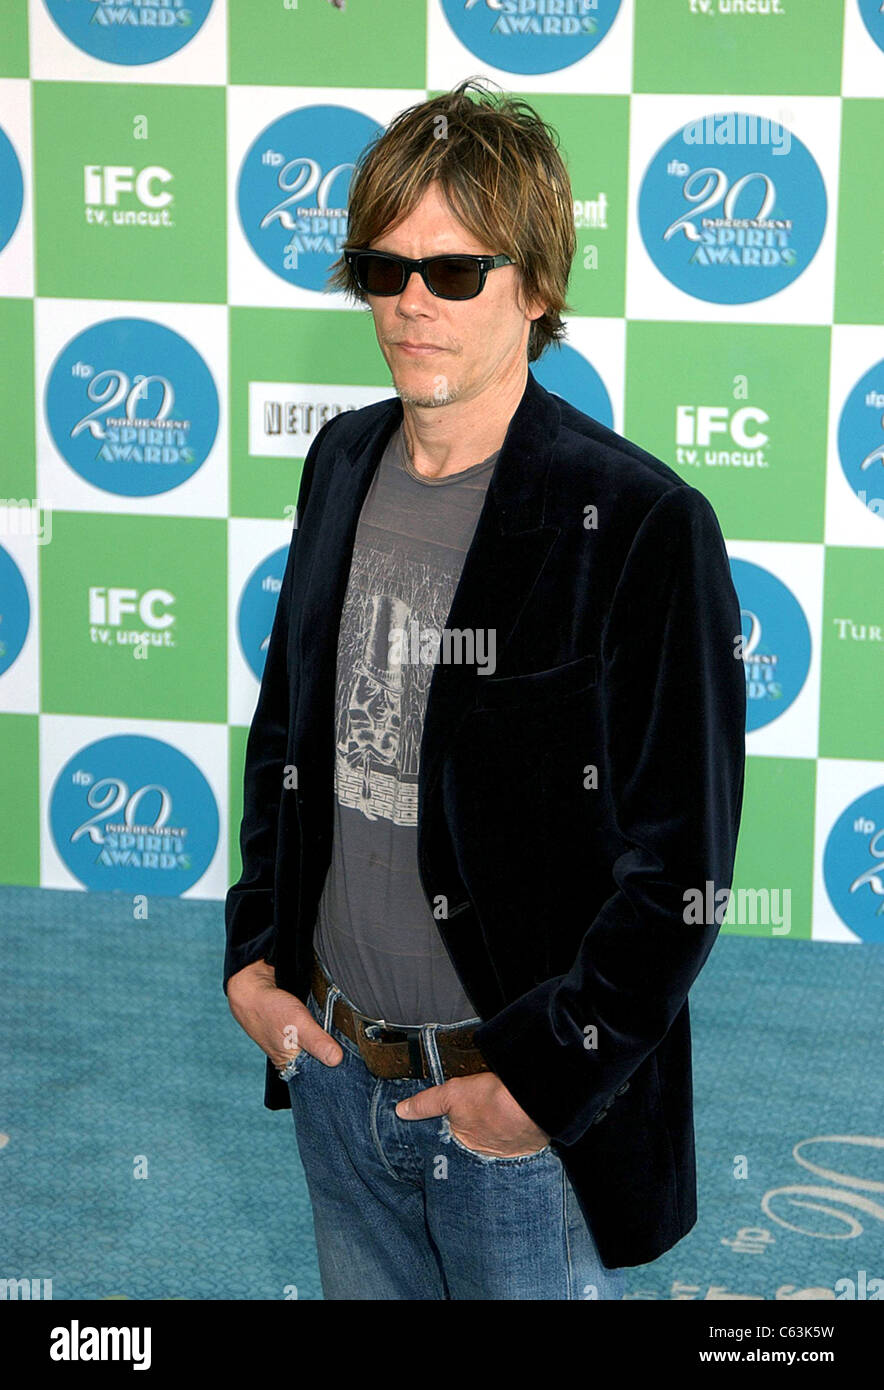 Kevin Bacon at arrivals for 20th IFP Independent Spirit Awards, Los Angeles, CA, Saturday, February 26, 2005. Photo - Stock Image